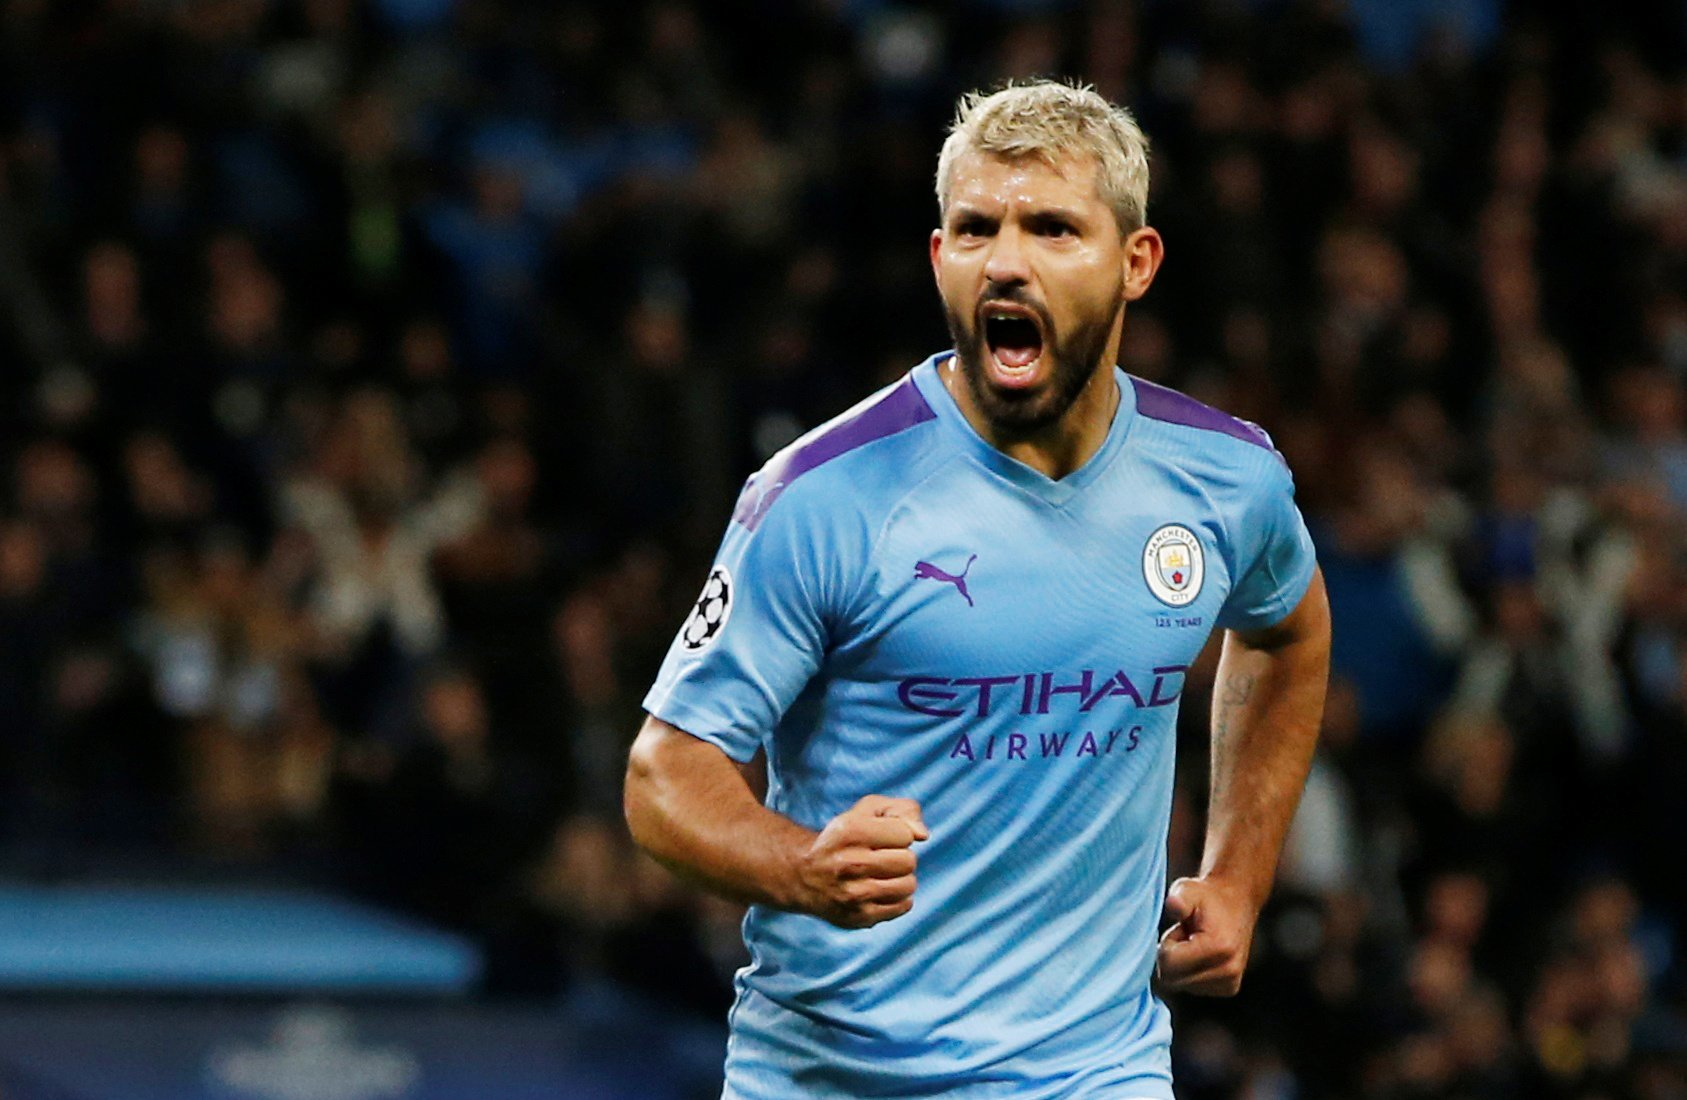 Sergio Aguero: £230,000 - Highest-paid Manchester City player